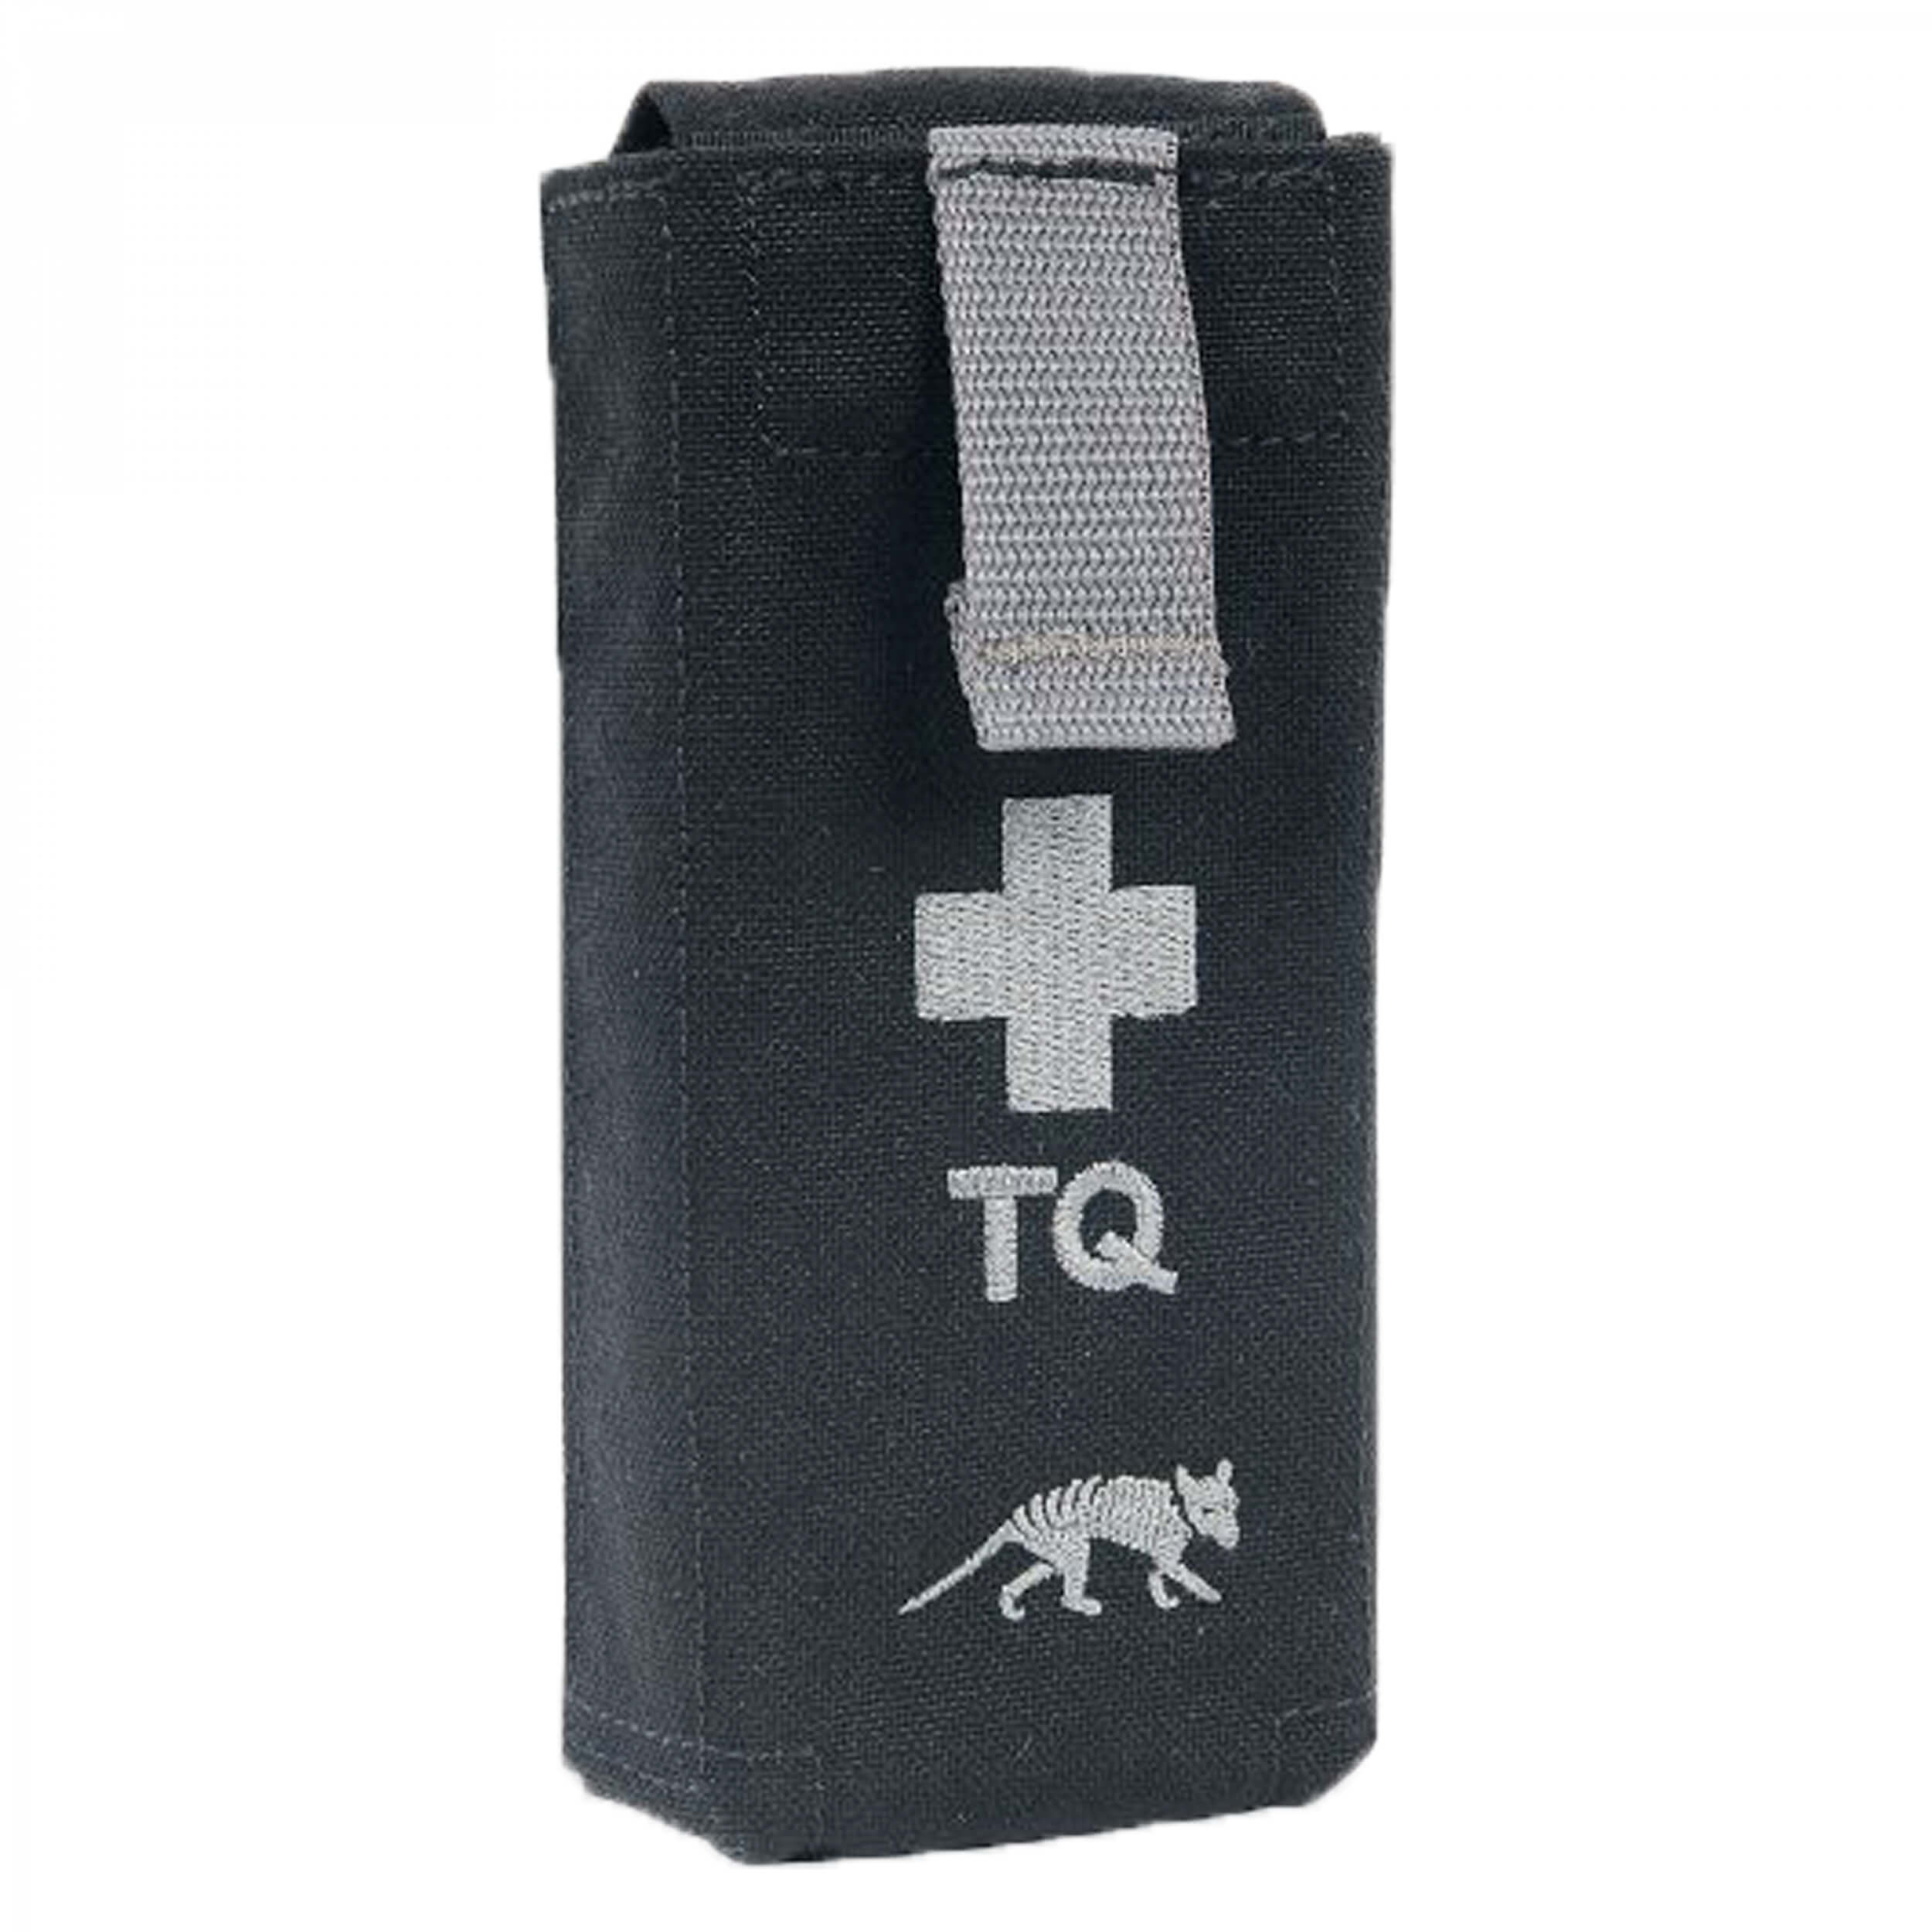 Tasmanian Tiger Tourniquet Pouch ll black